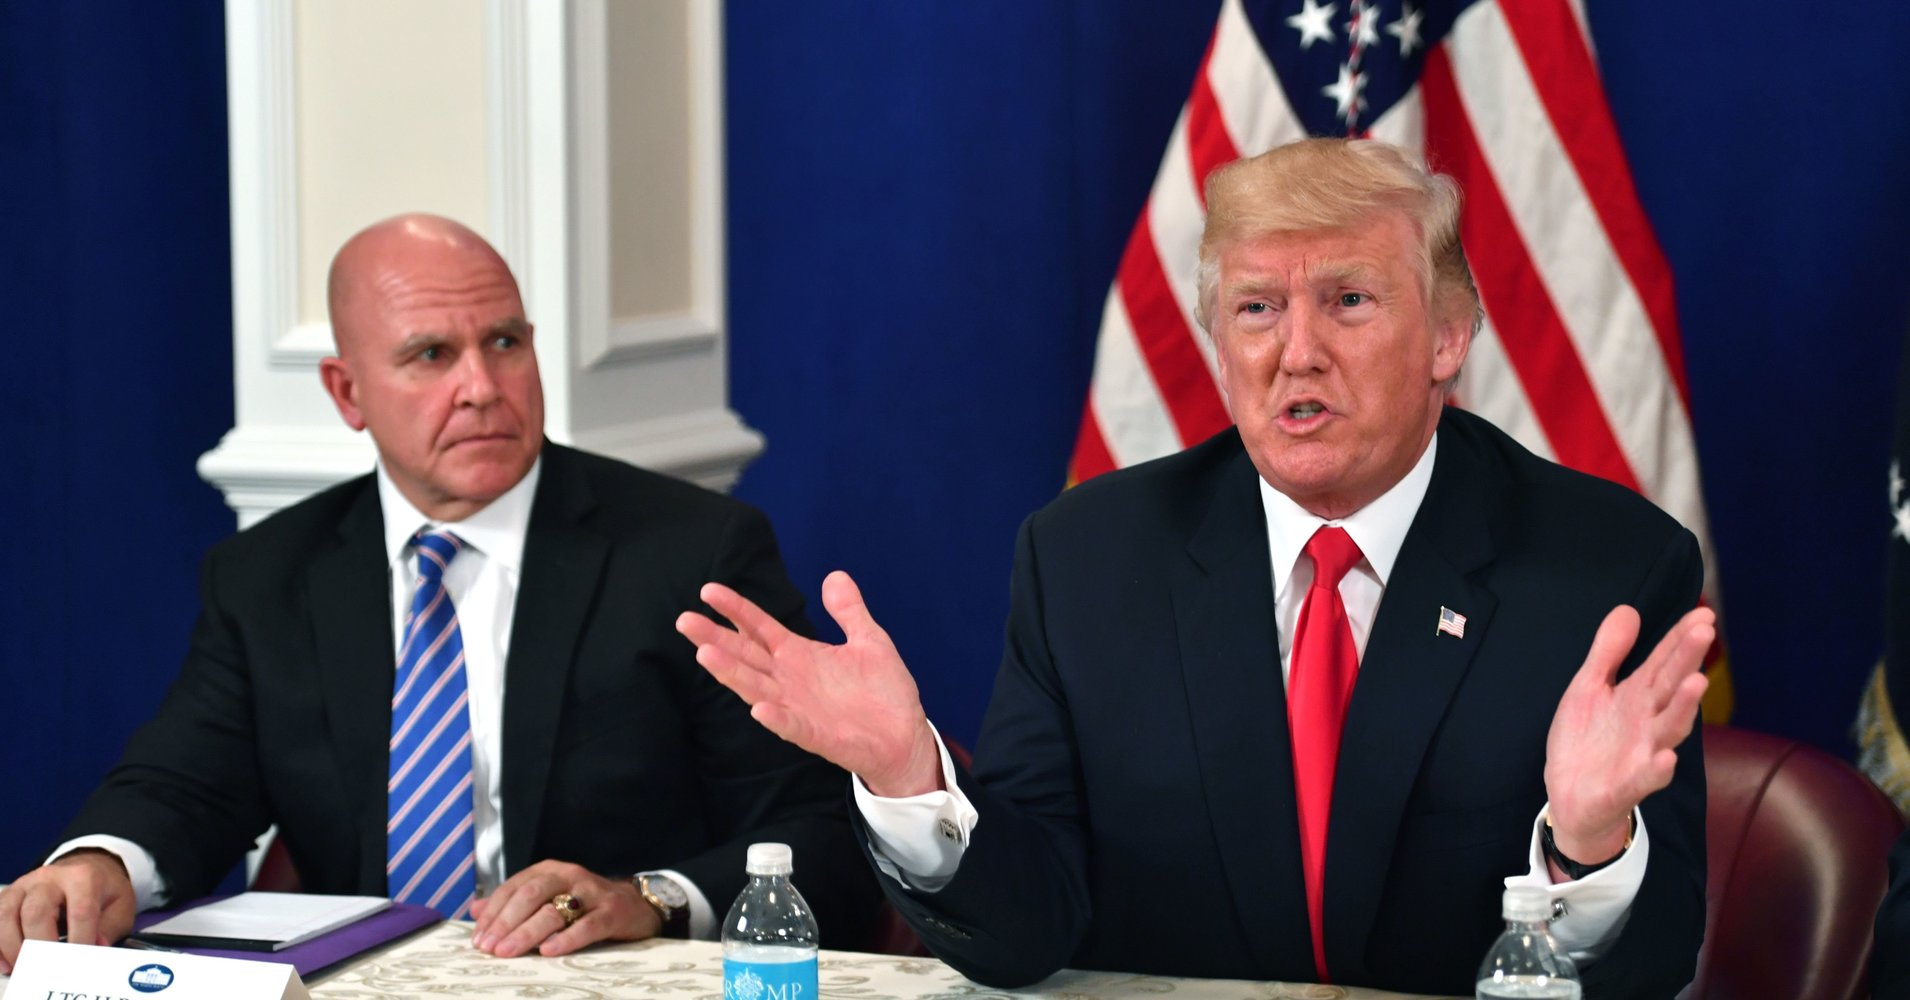 H.R. McMaster showed Trump photo of Afghan women in miniskirts to escalate war https://t.co/QdNlbJ30na https://t.co/GO4G6vQWPr